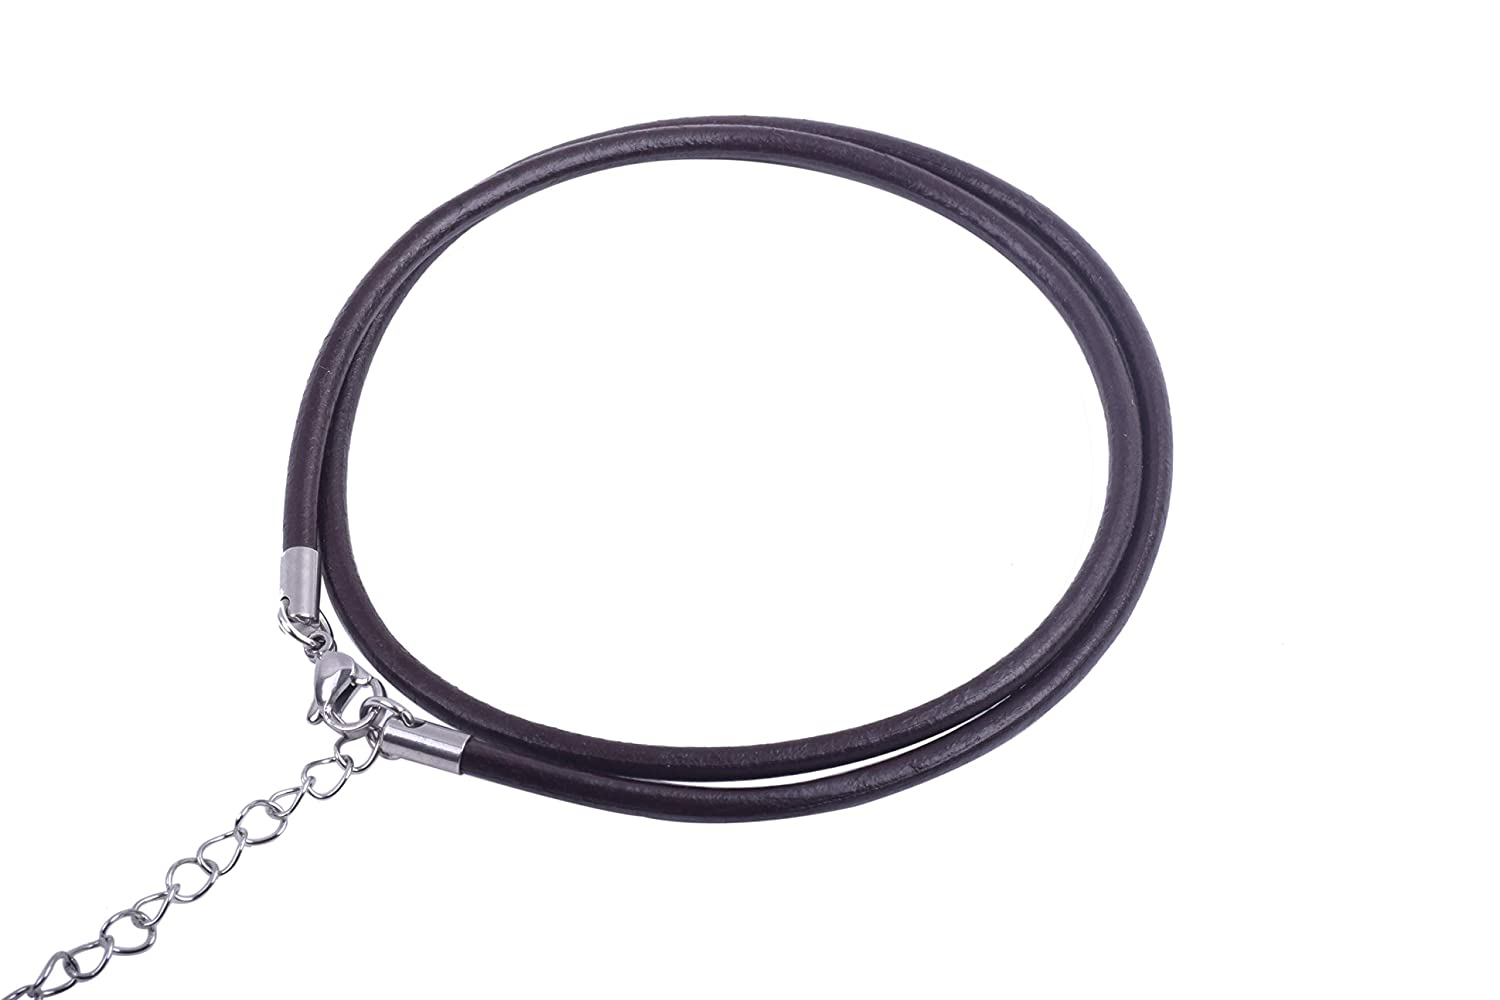 Caps and Extension Chain KONMAY 20pcs 18 Real Leather Necklace Cord with 304L Stainless Steel Clasps